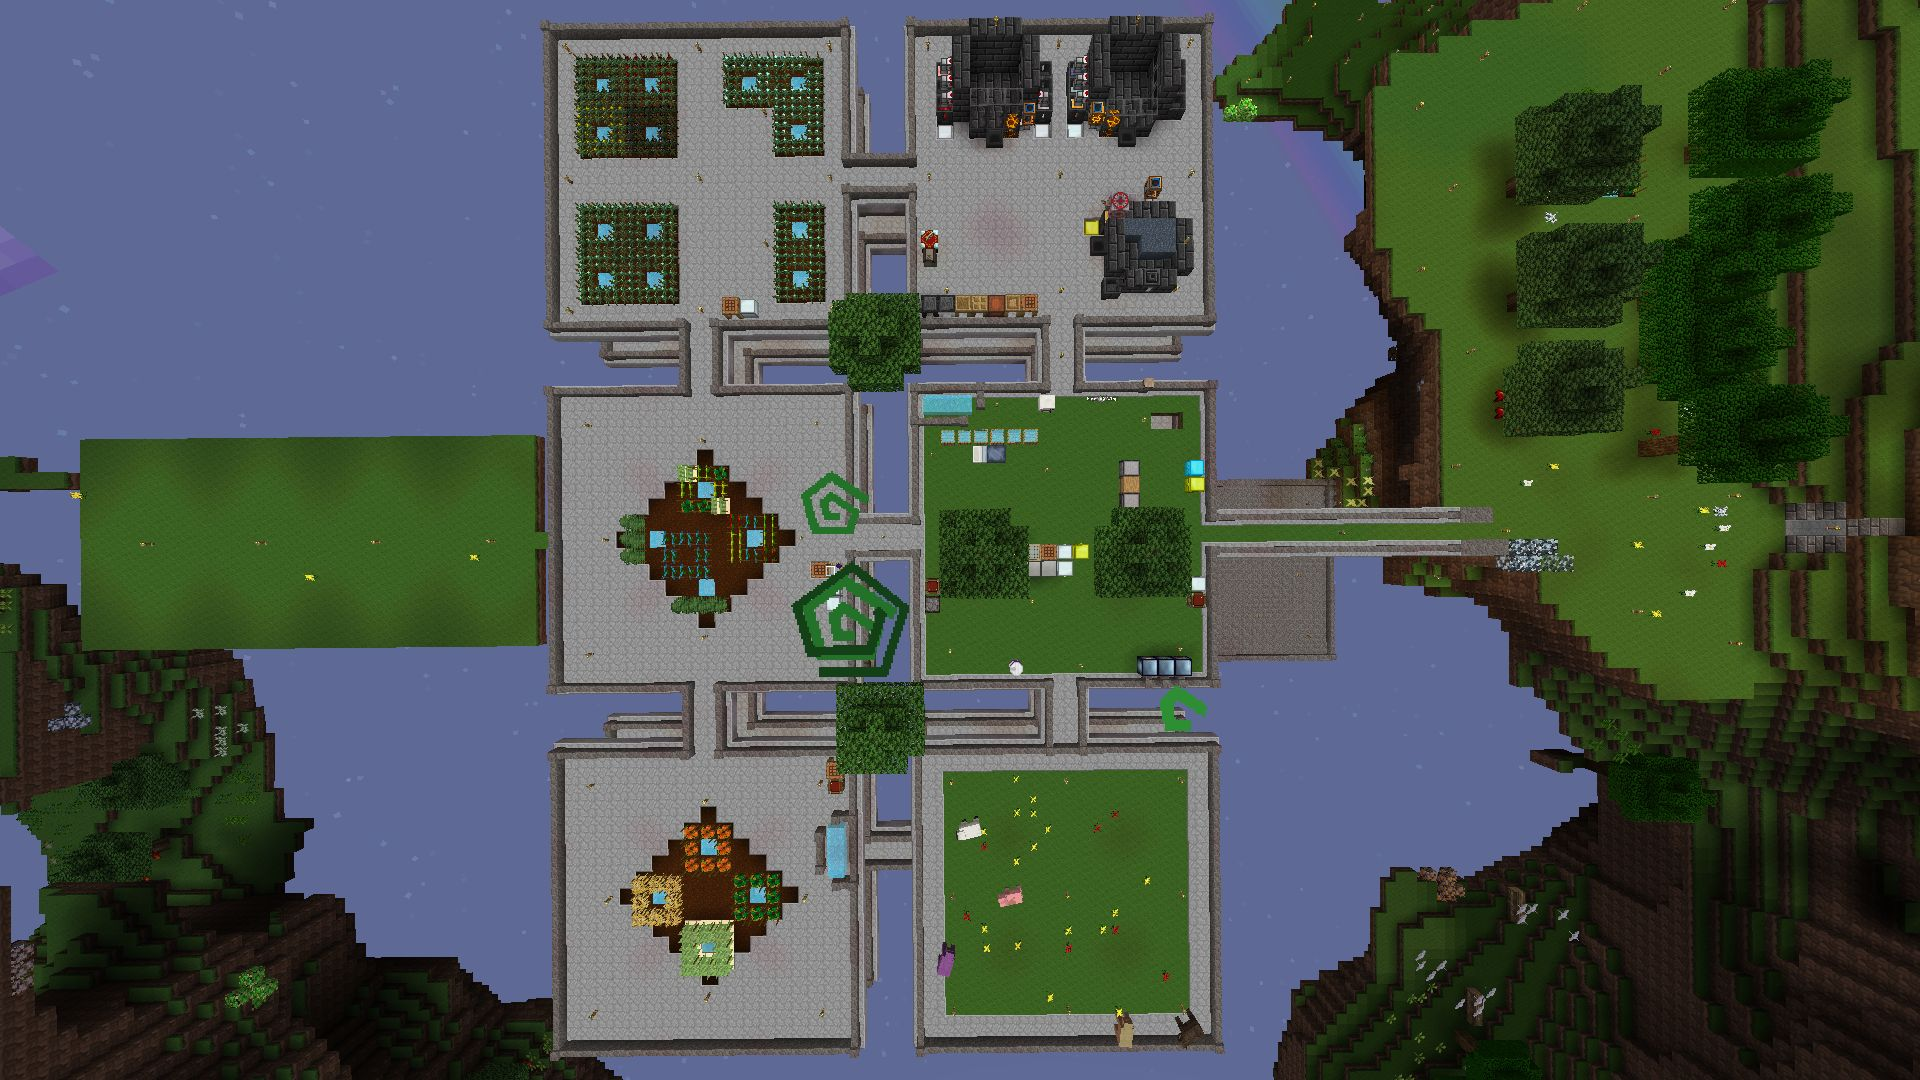 A bird's-eye view of the skyblock